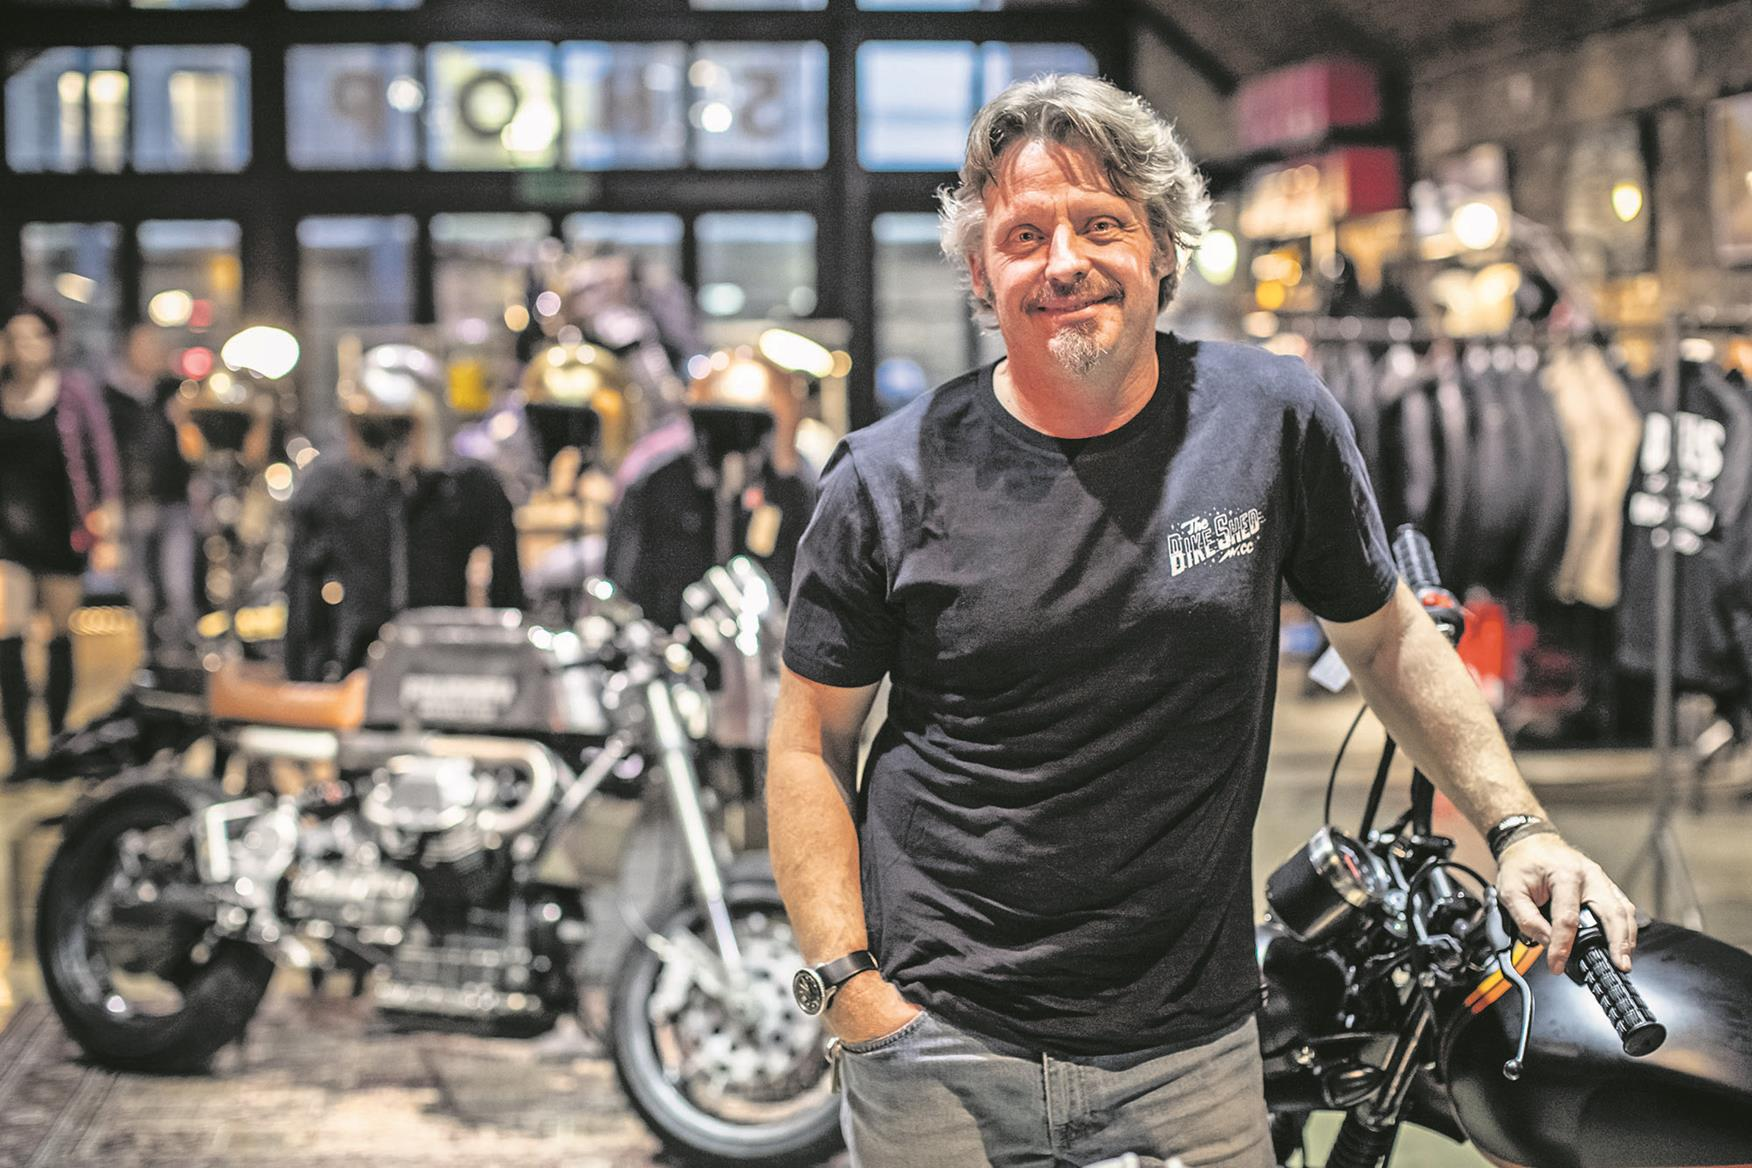 Charley Boorman at the Bike Shed